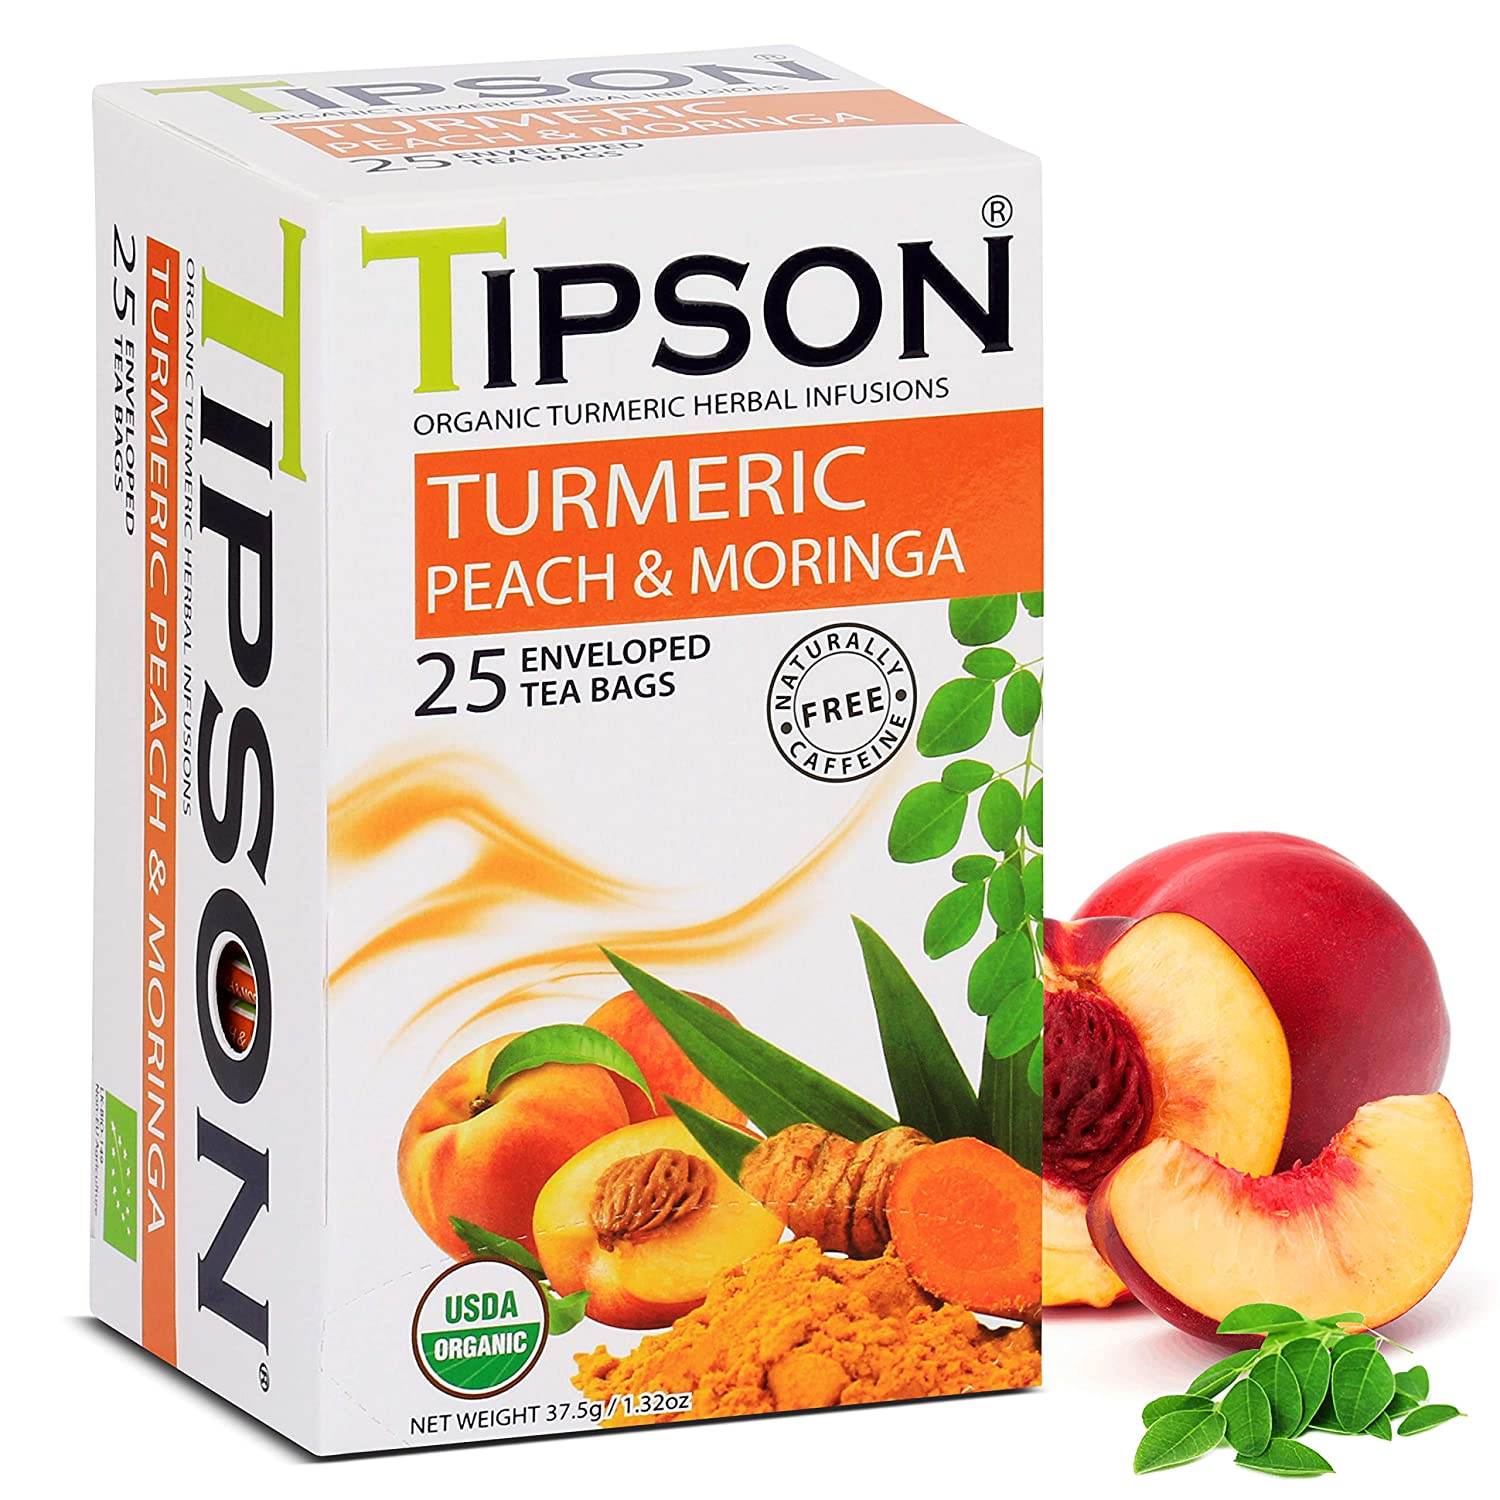 Tipson Organic Turmeric Caffeine Free Herbal Tea - Organic Moringa and Peach Flavor